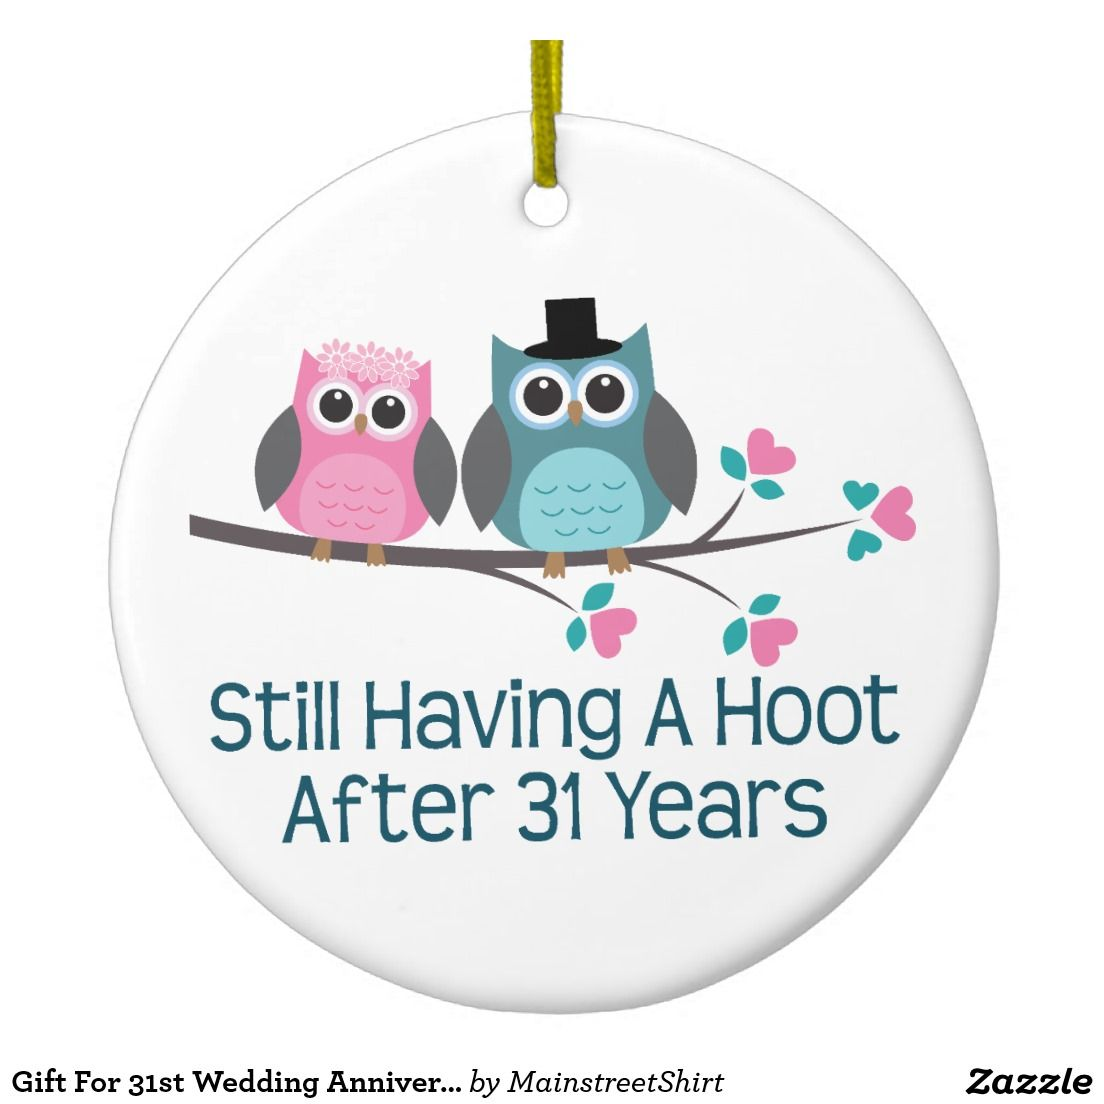 Gift For 31st Wedding Anniversary Hoot Christmas Ornament Zazzle